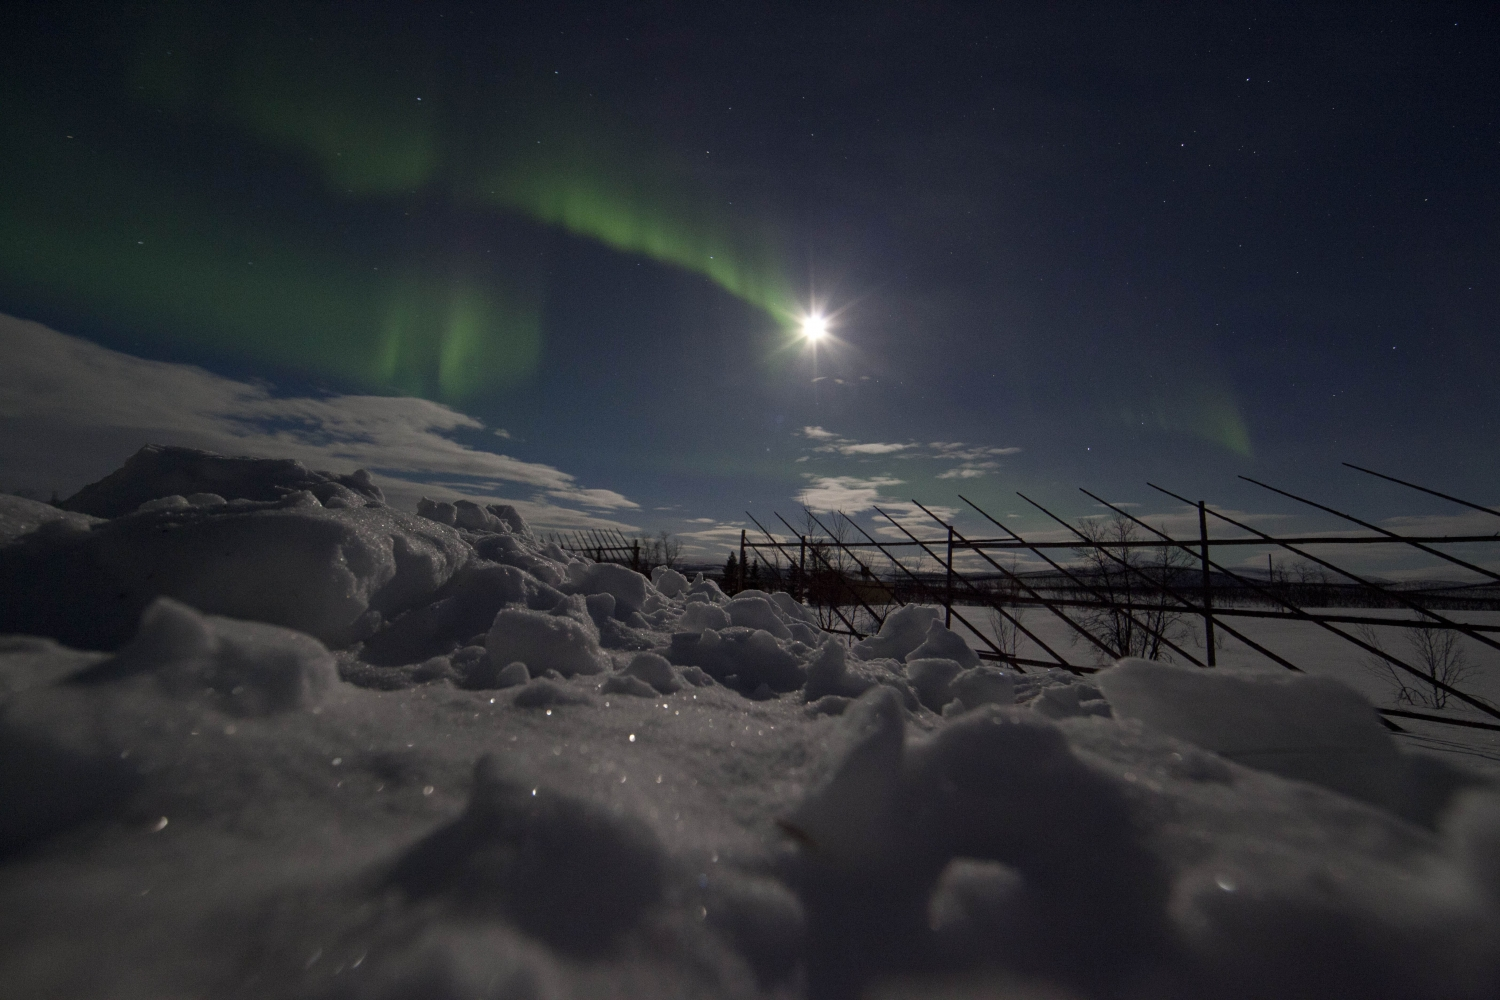 Northern lights over snow, moonlight in the background